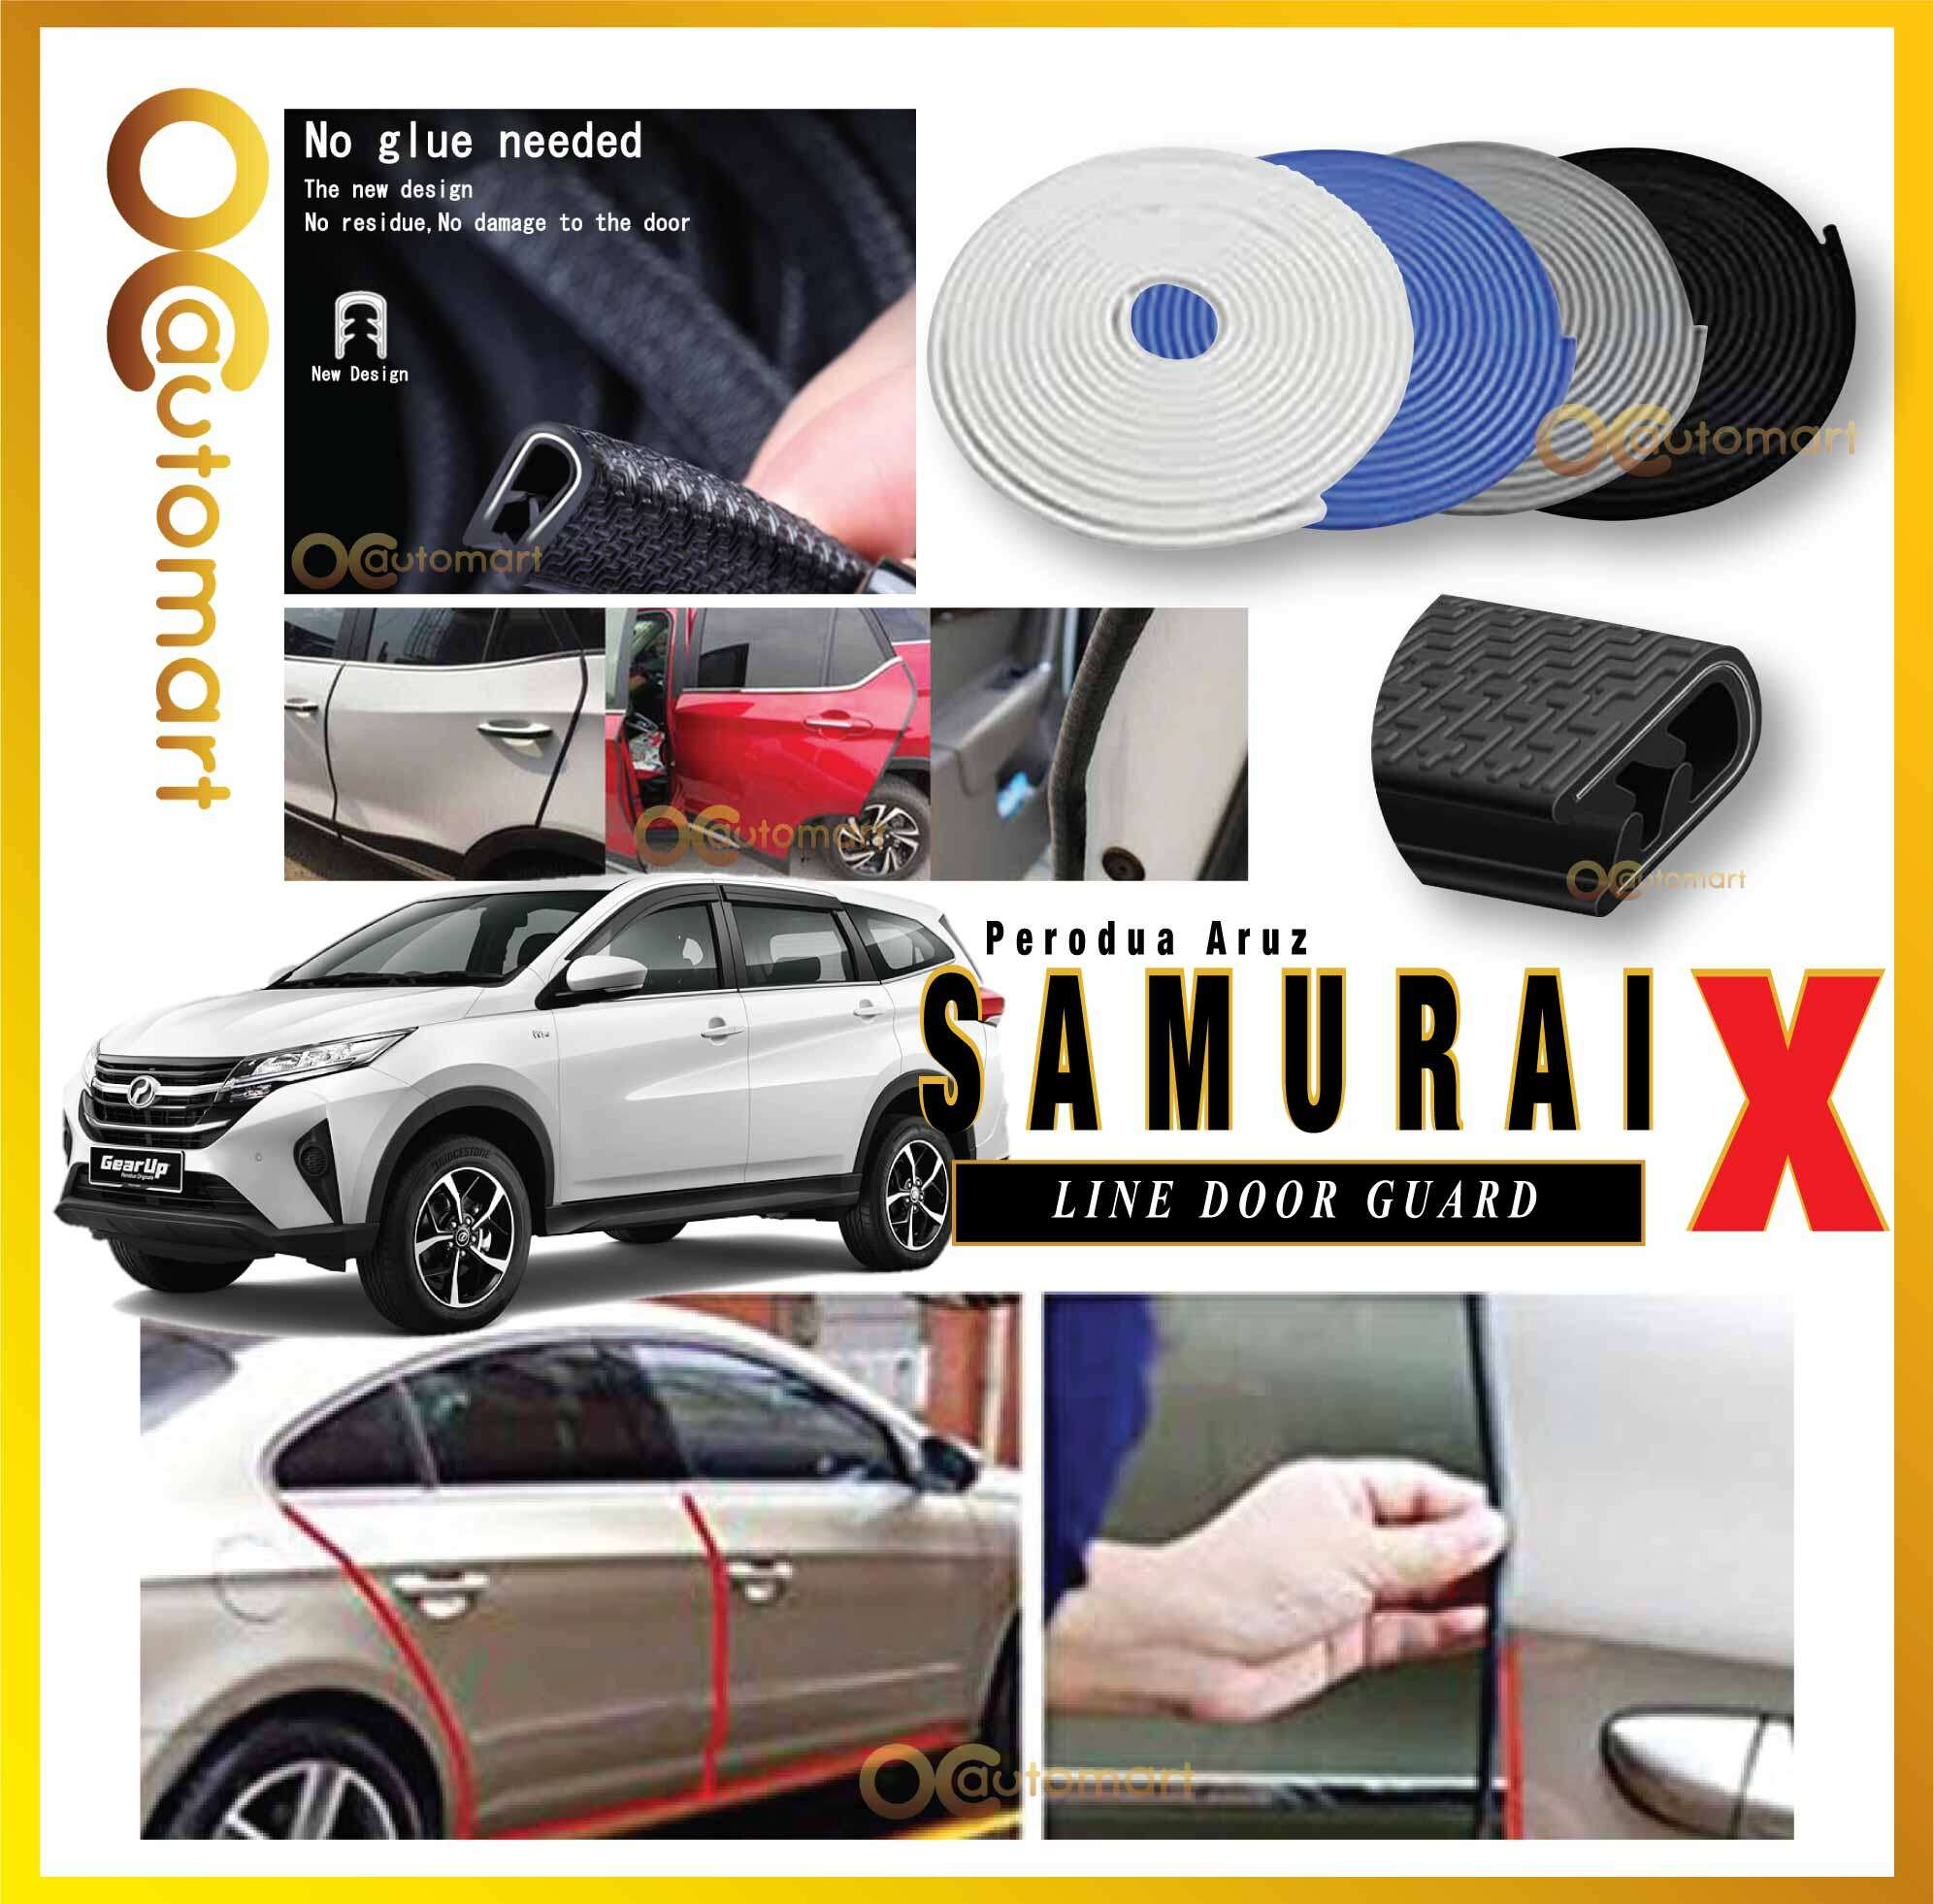 Samurai X Car Door Edge Guards 16Ft (5M) Rubber Car Door Protector Car Perodua Aruz Door Trim (4 Door) (Black,White,Gray,Blue)